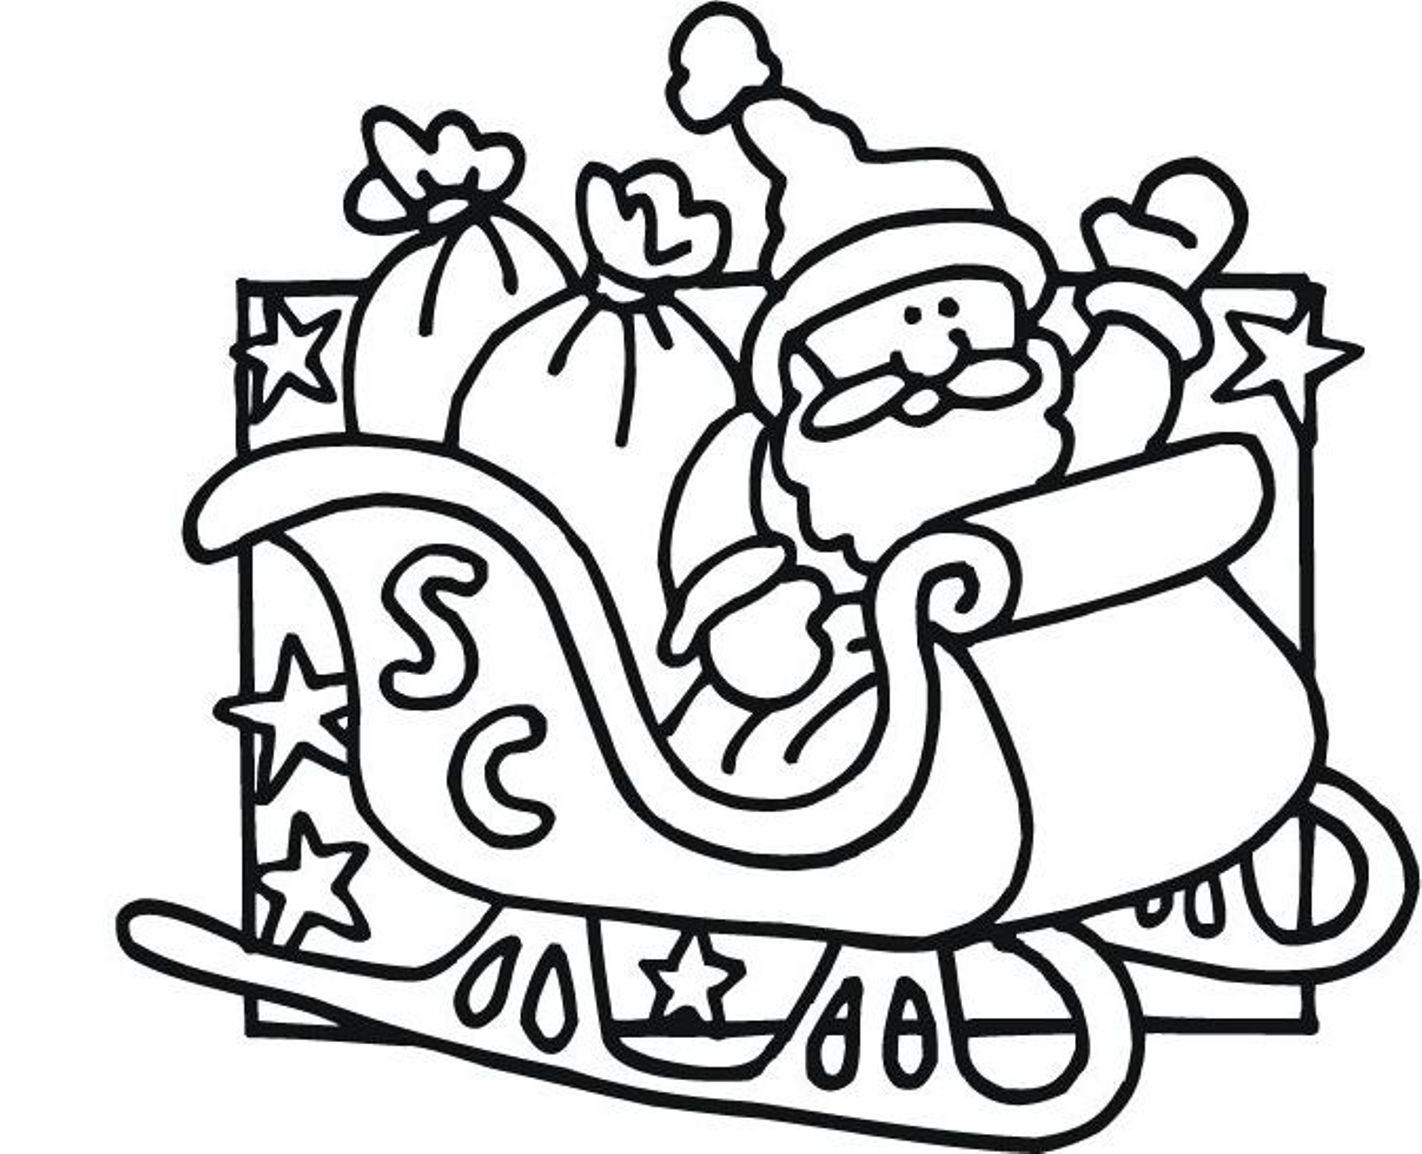 1422x1154 Creative Designs Santa Claus Coloring Pages 85 Christmas